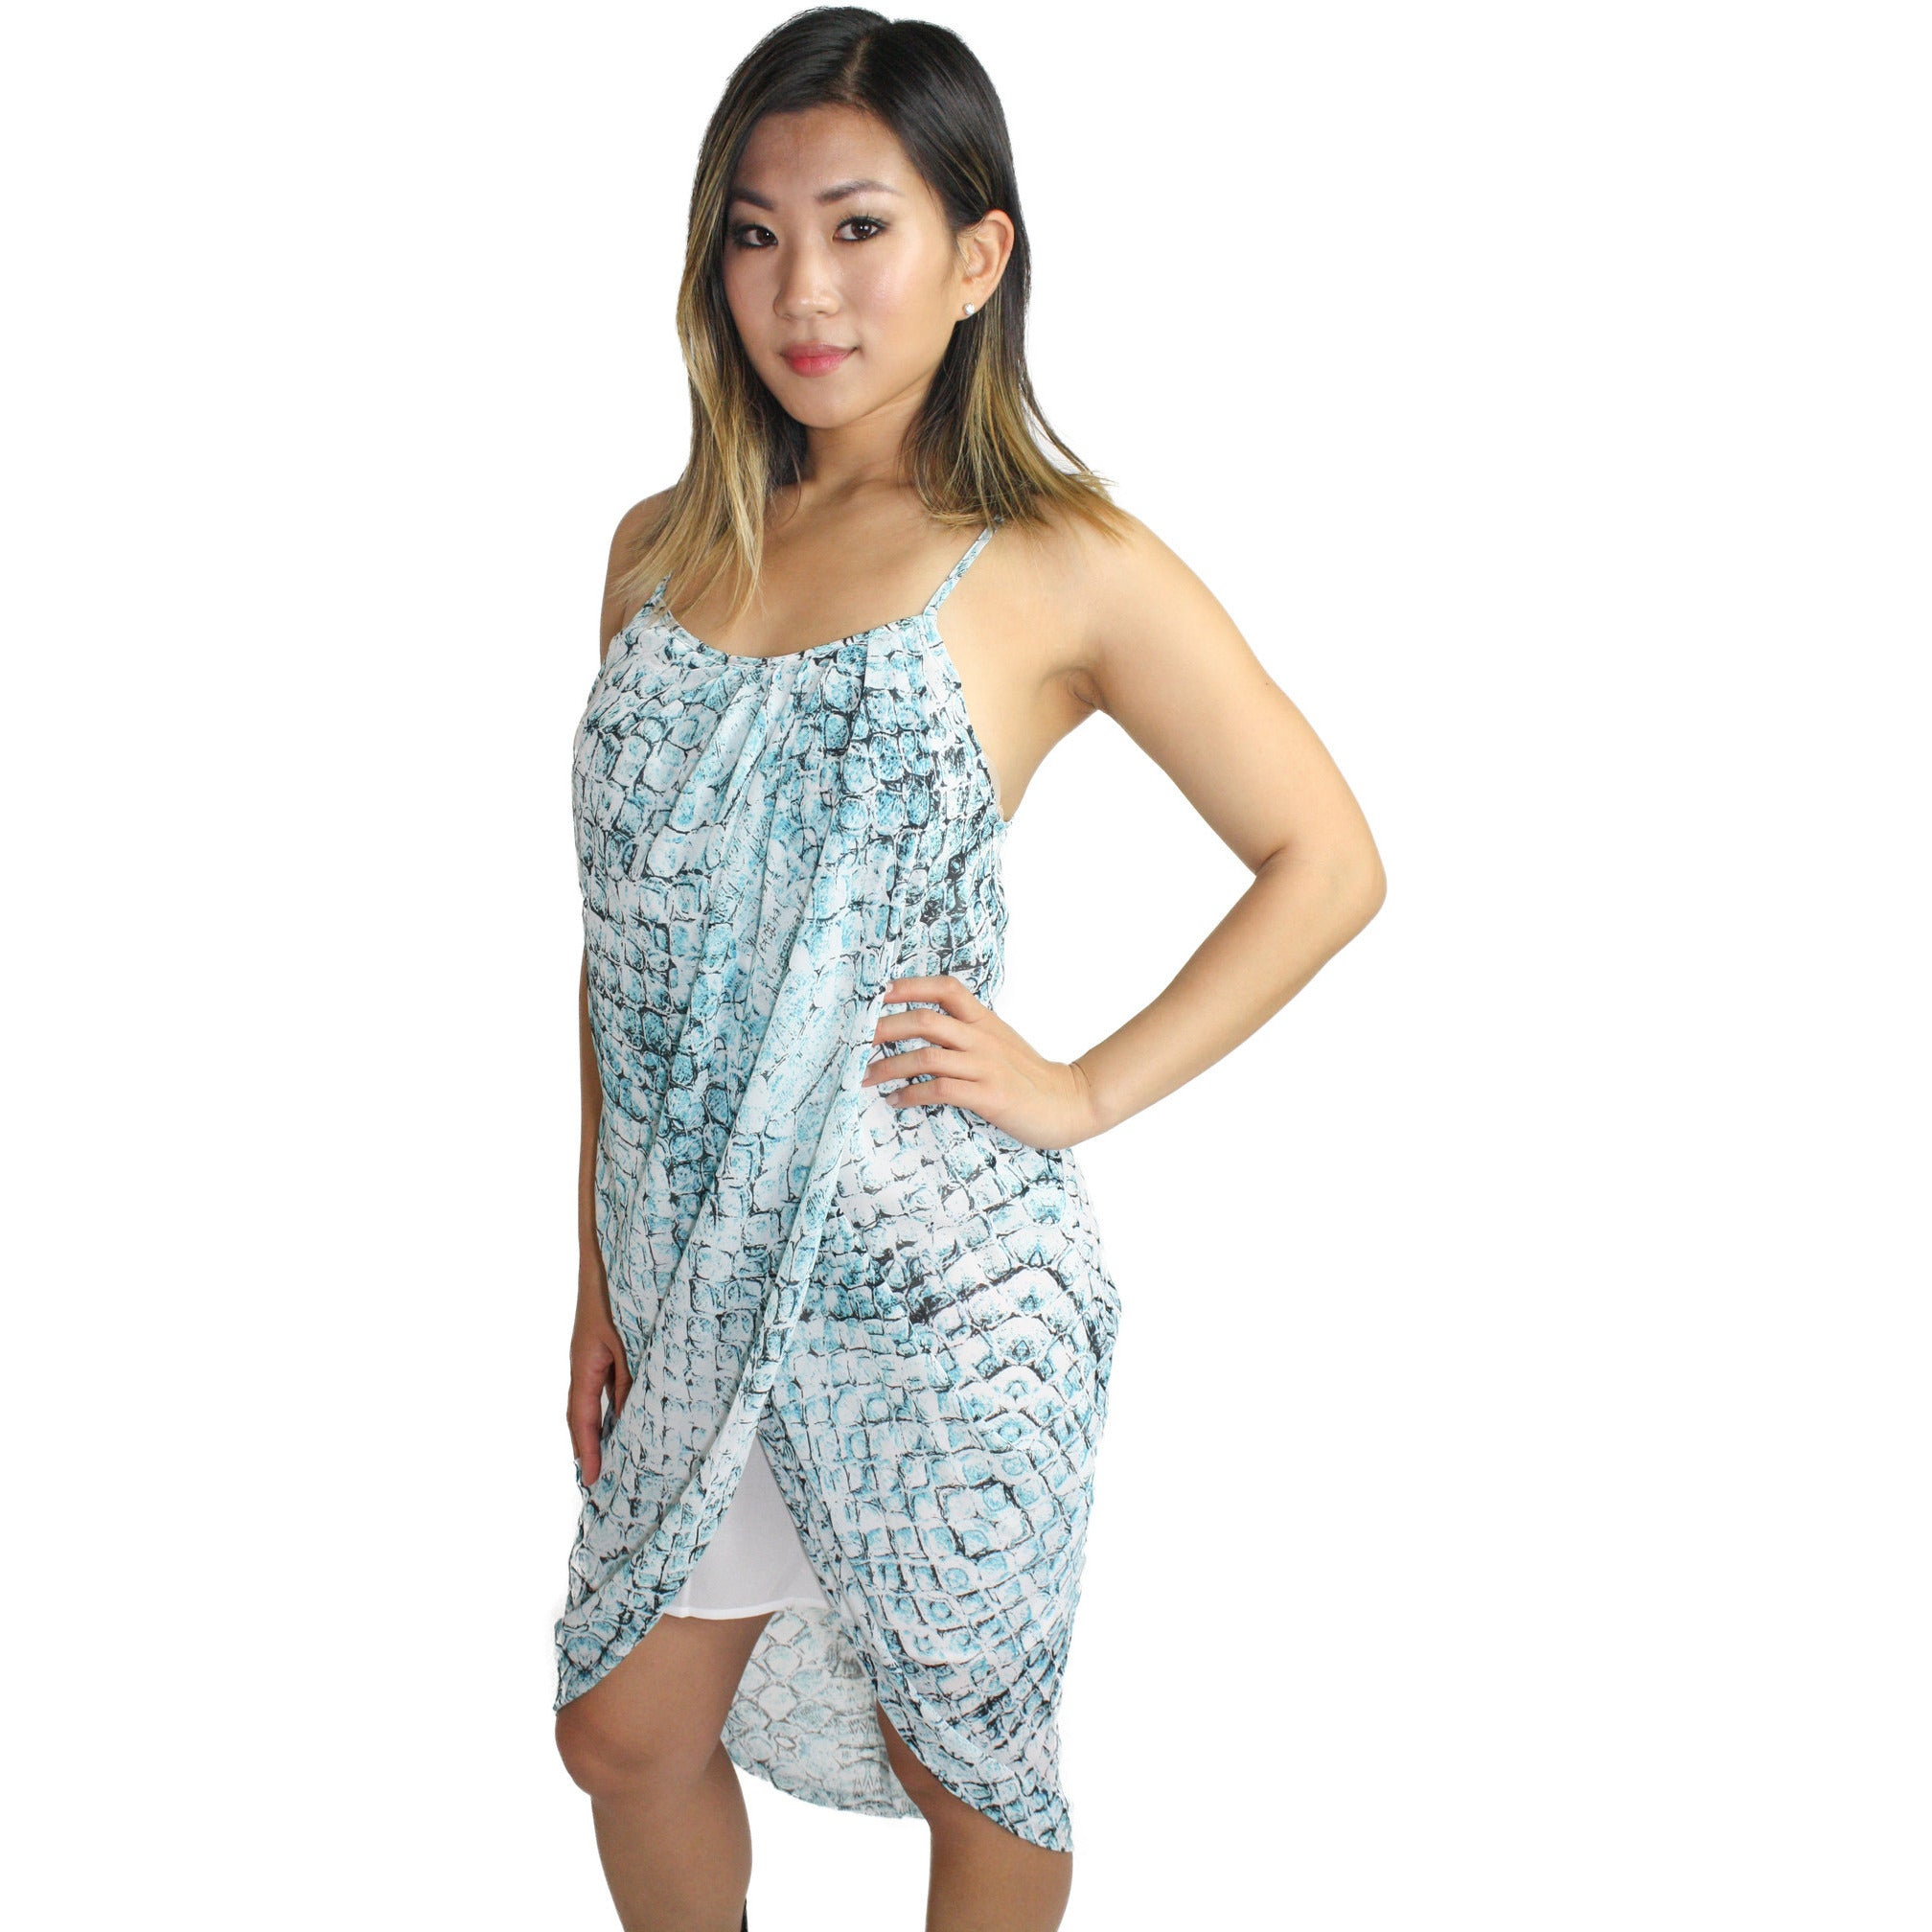 Beach Queen Tank Dress in Turquoise Waters